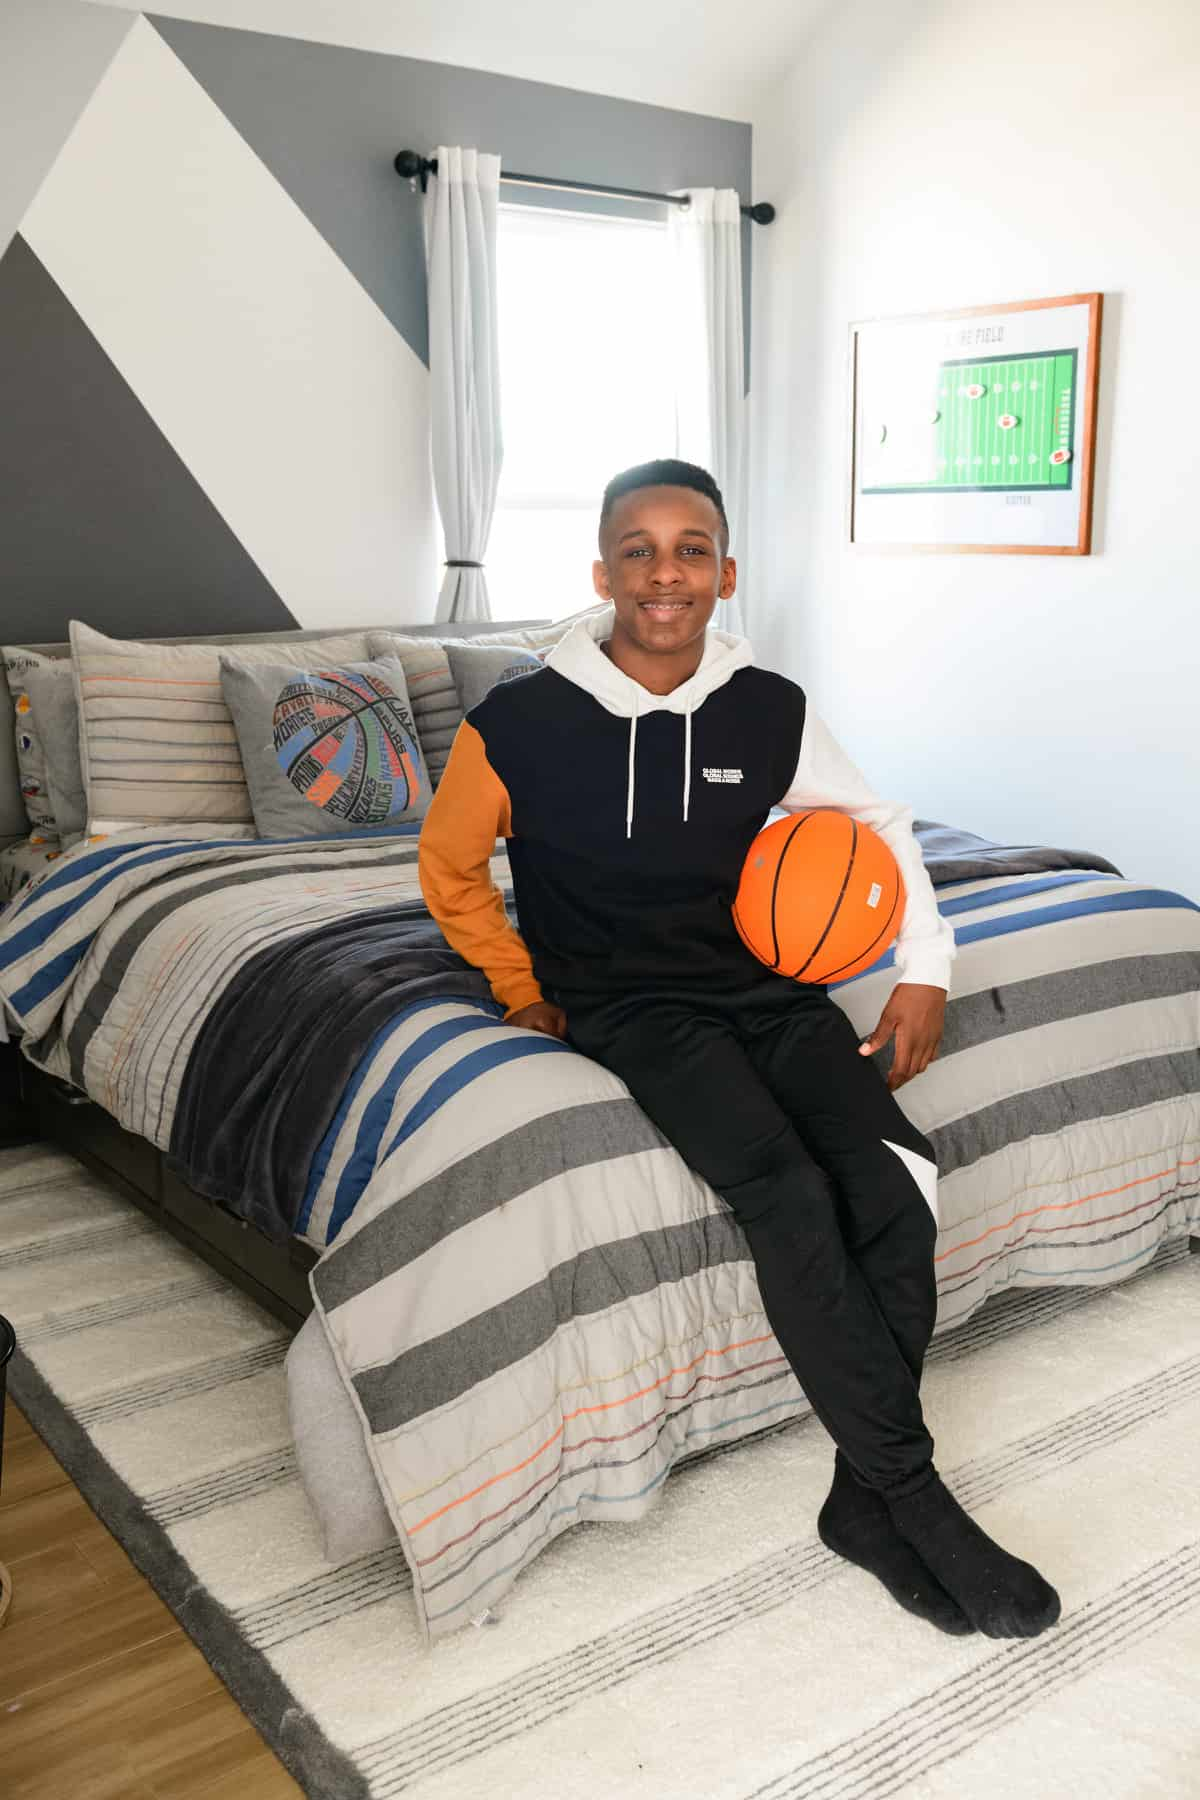 Teenage Boy Bedroom by popular Dallas life and style blog, Glamorous Versatility: image of a teenage boy holding a basketball and sitting on a bed with a blue, white, and grey strip bed cover.